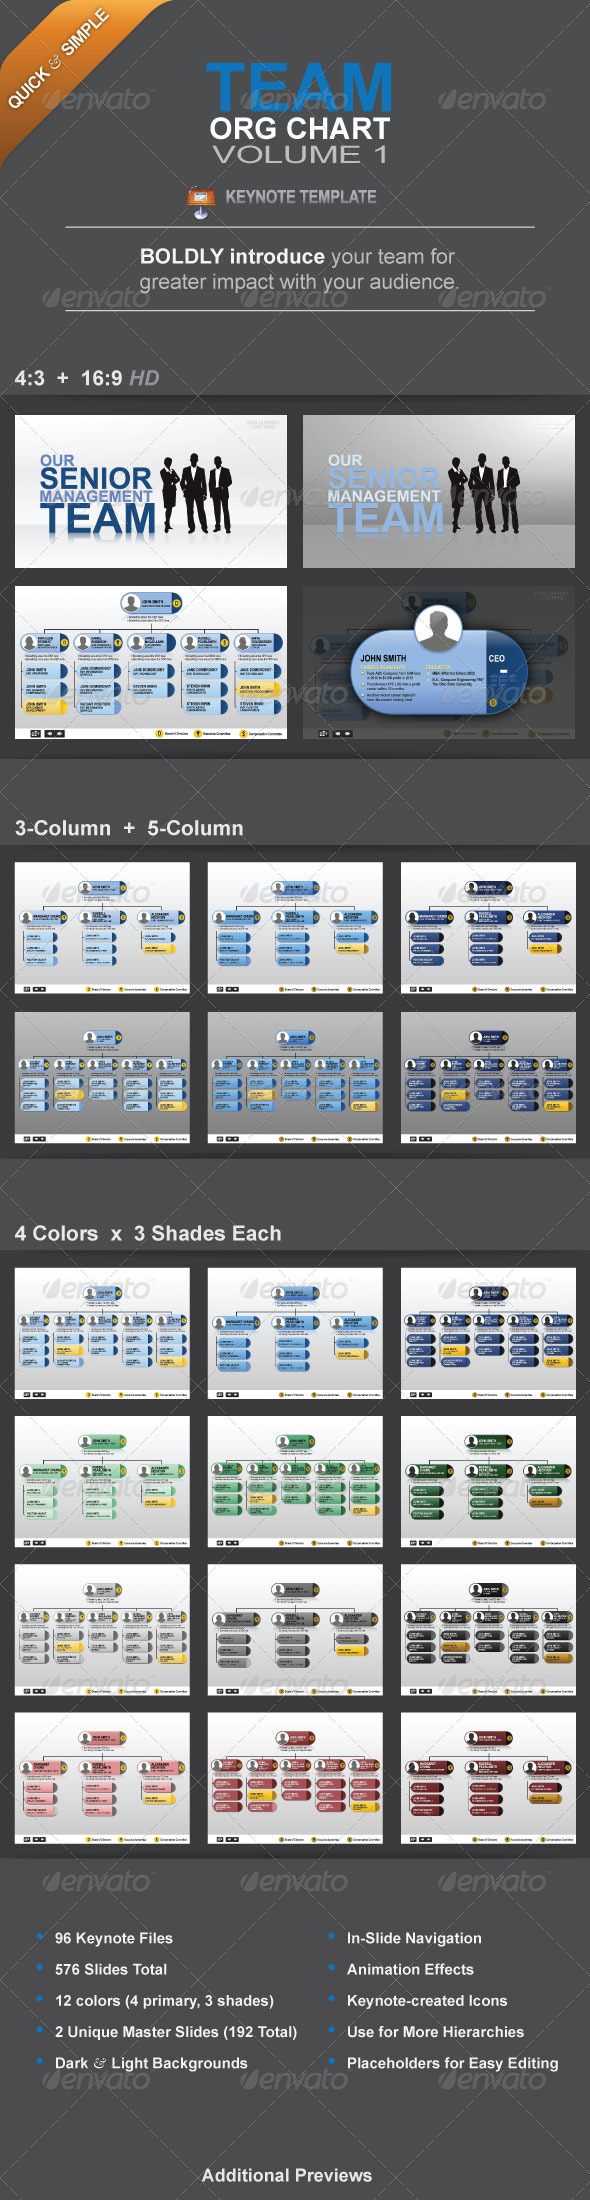 GraphicRiver Team Org Chart Vol 1 5321975